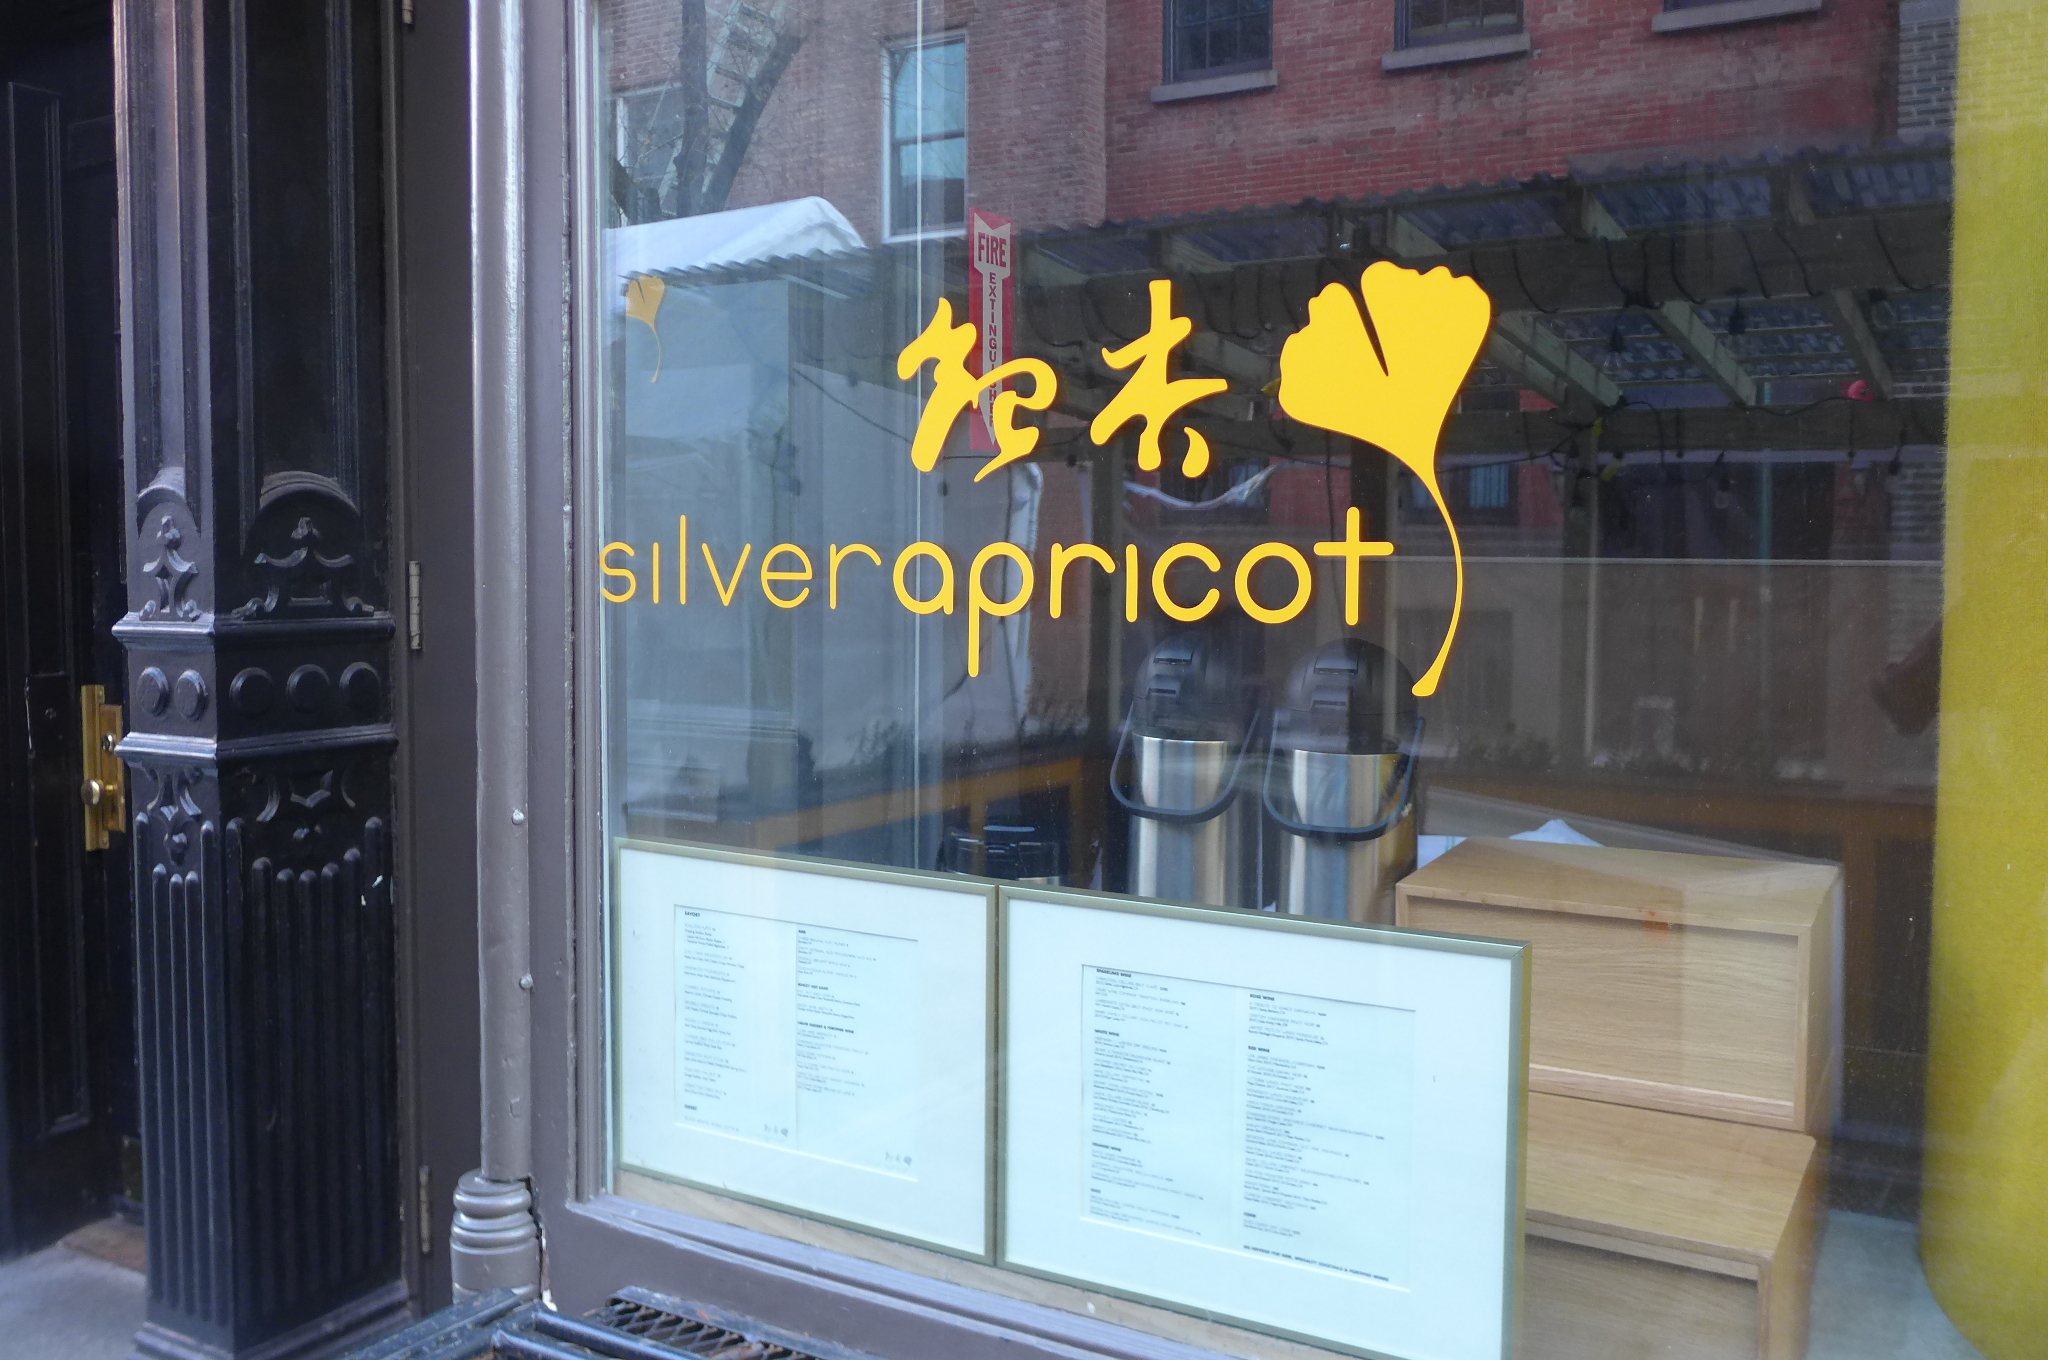 The name of the restaurant stenciled on the window in orange along with a single gingko leaf.